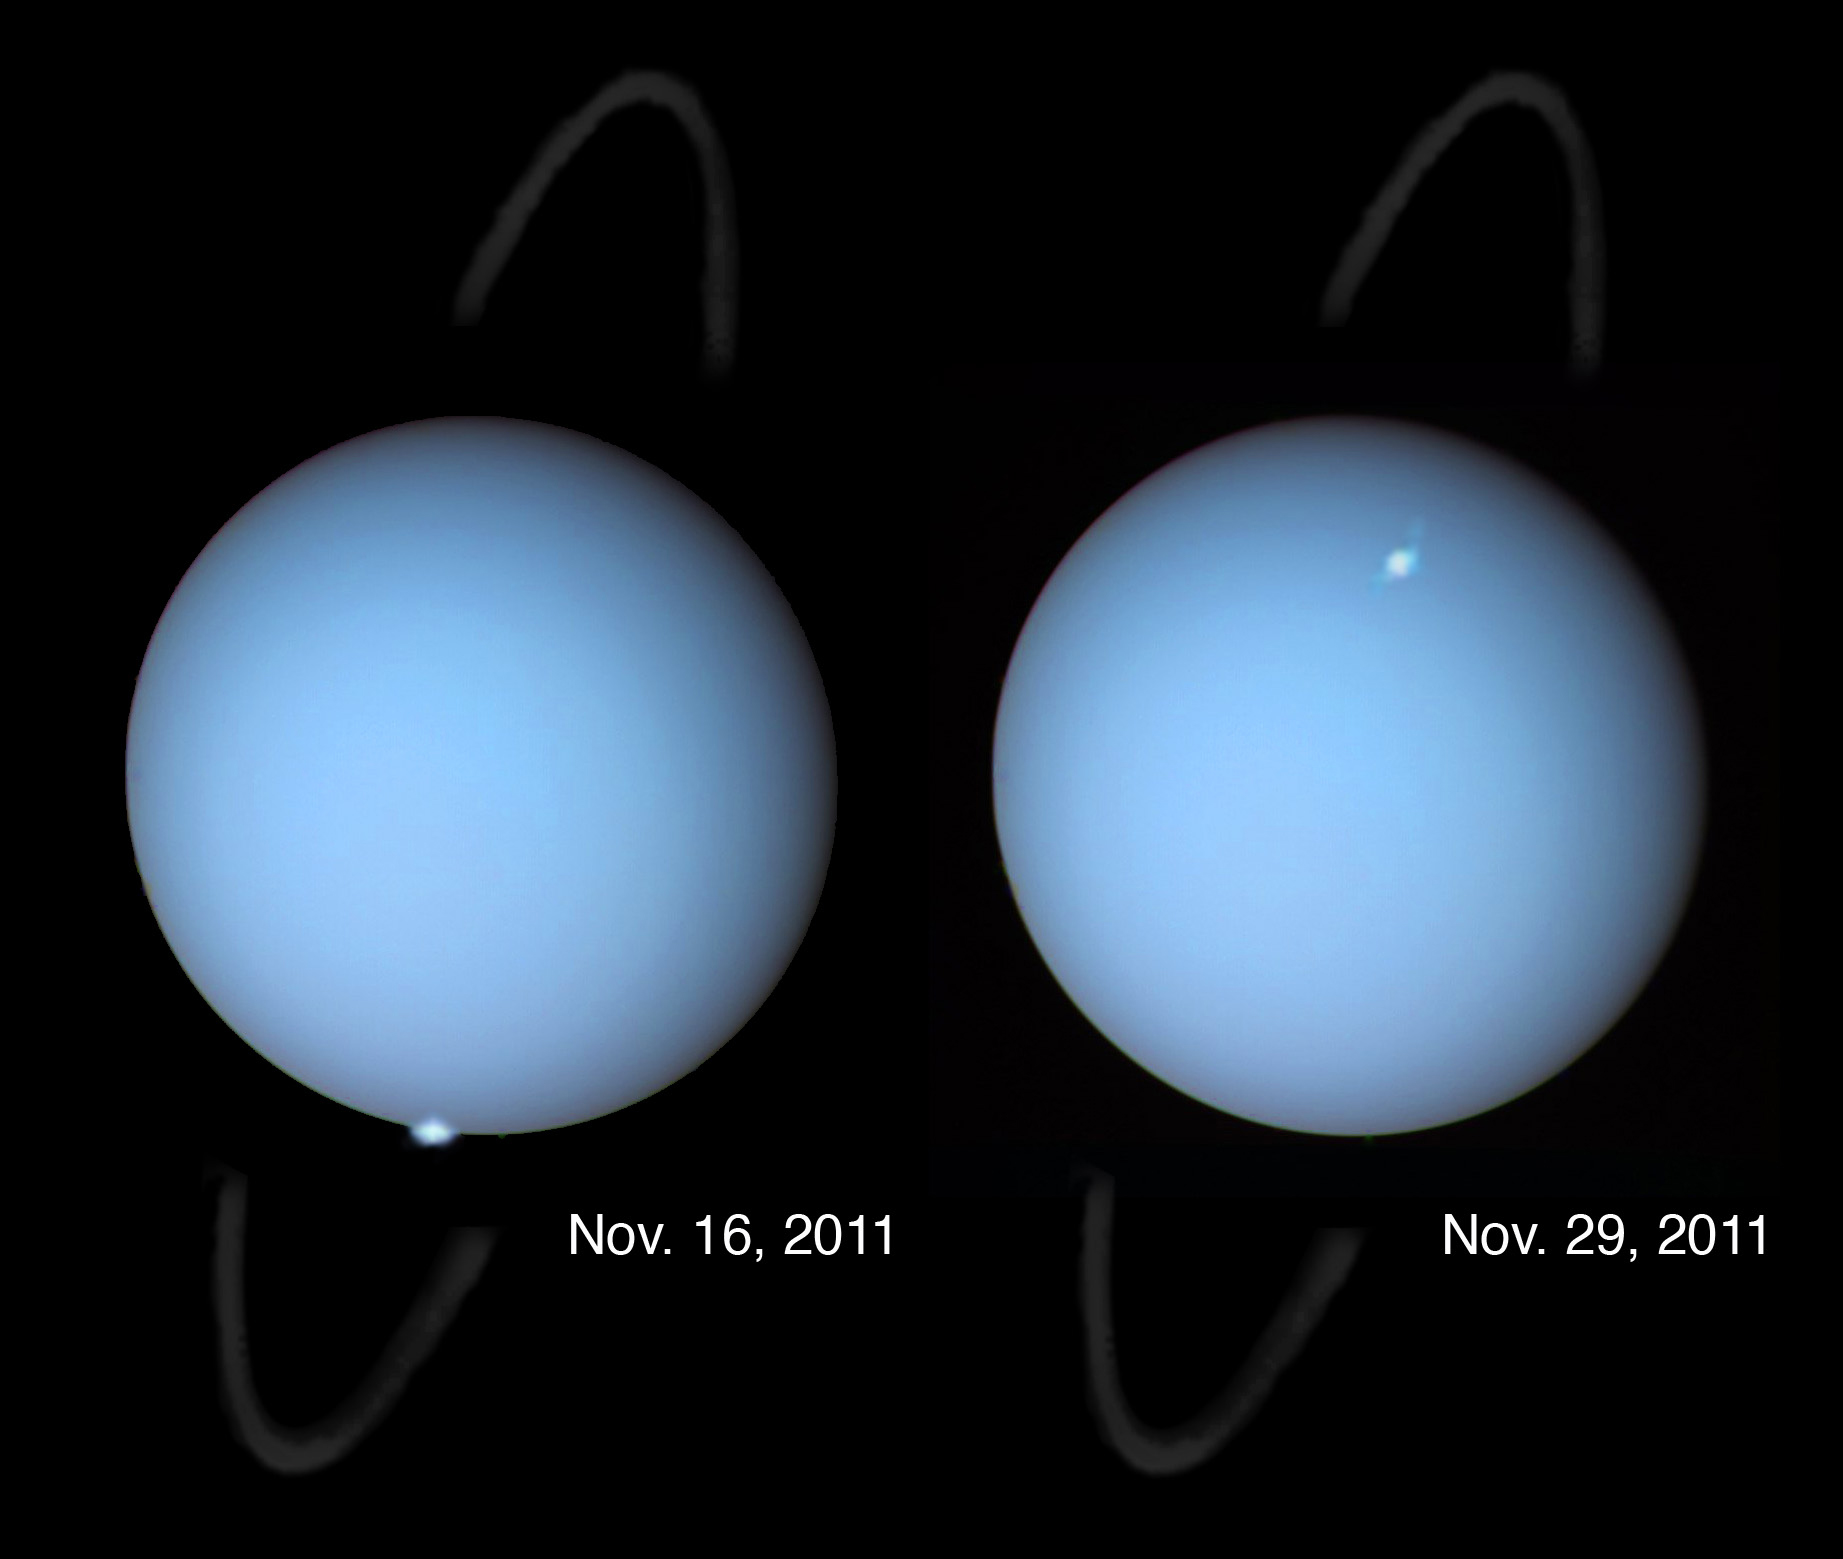 Sr 33 Uranus Jokes Never Get Old Paul M Sutter